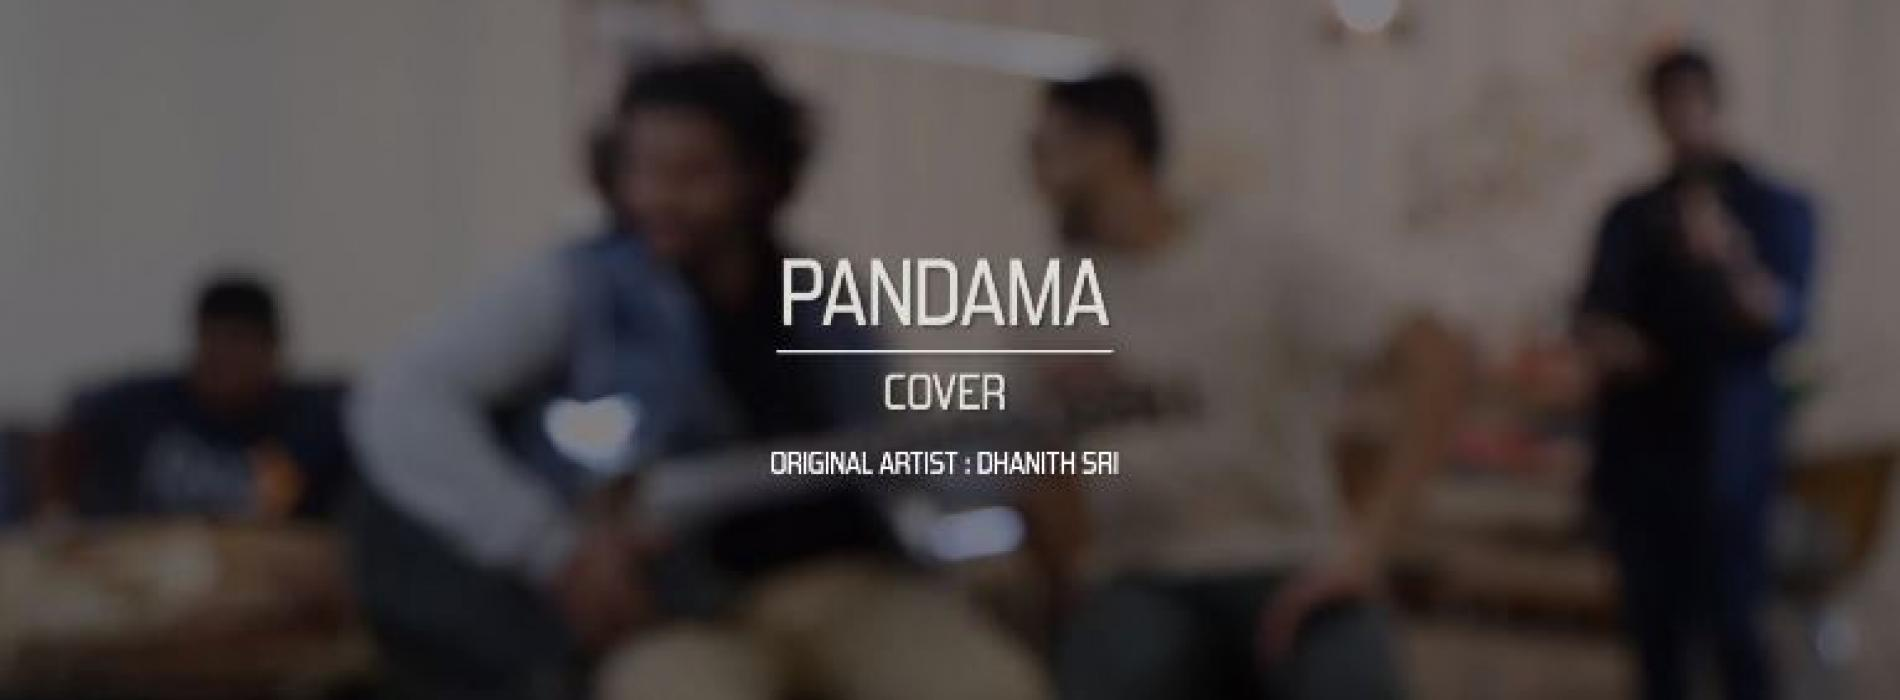 Pandama (පන්දම) Cover | Api Collaboration